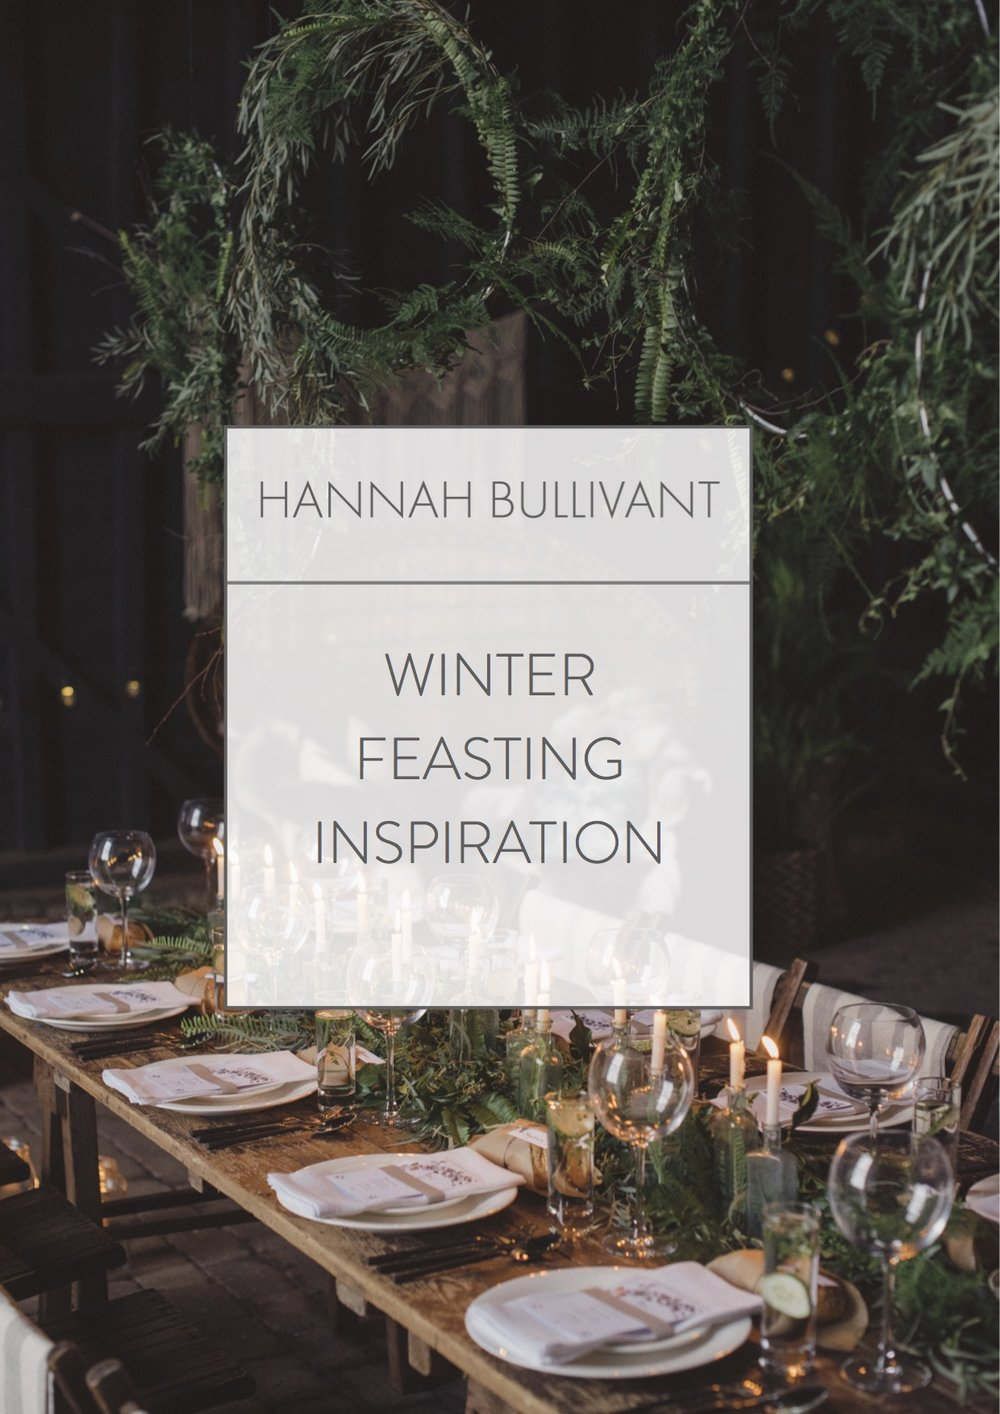 Winter feasting inspiration. Hannah Bullivant